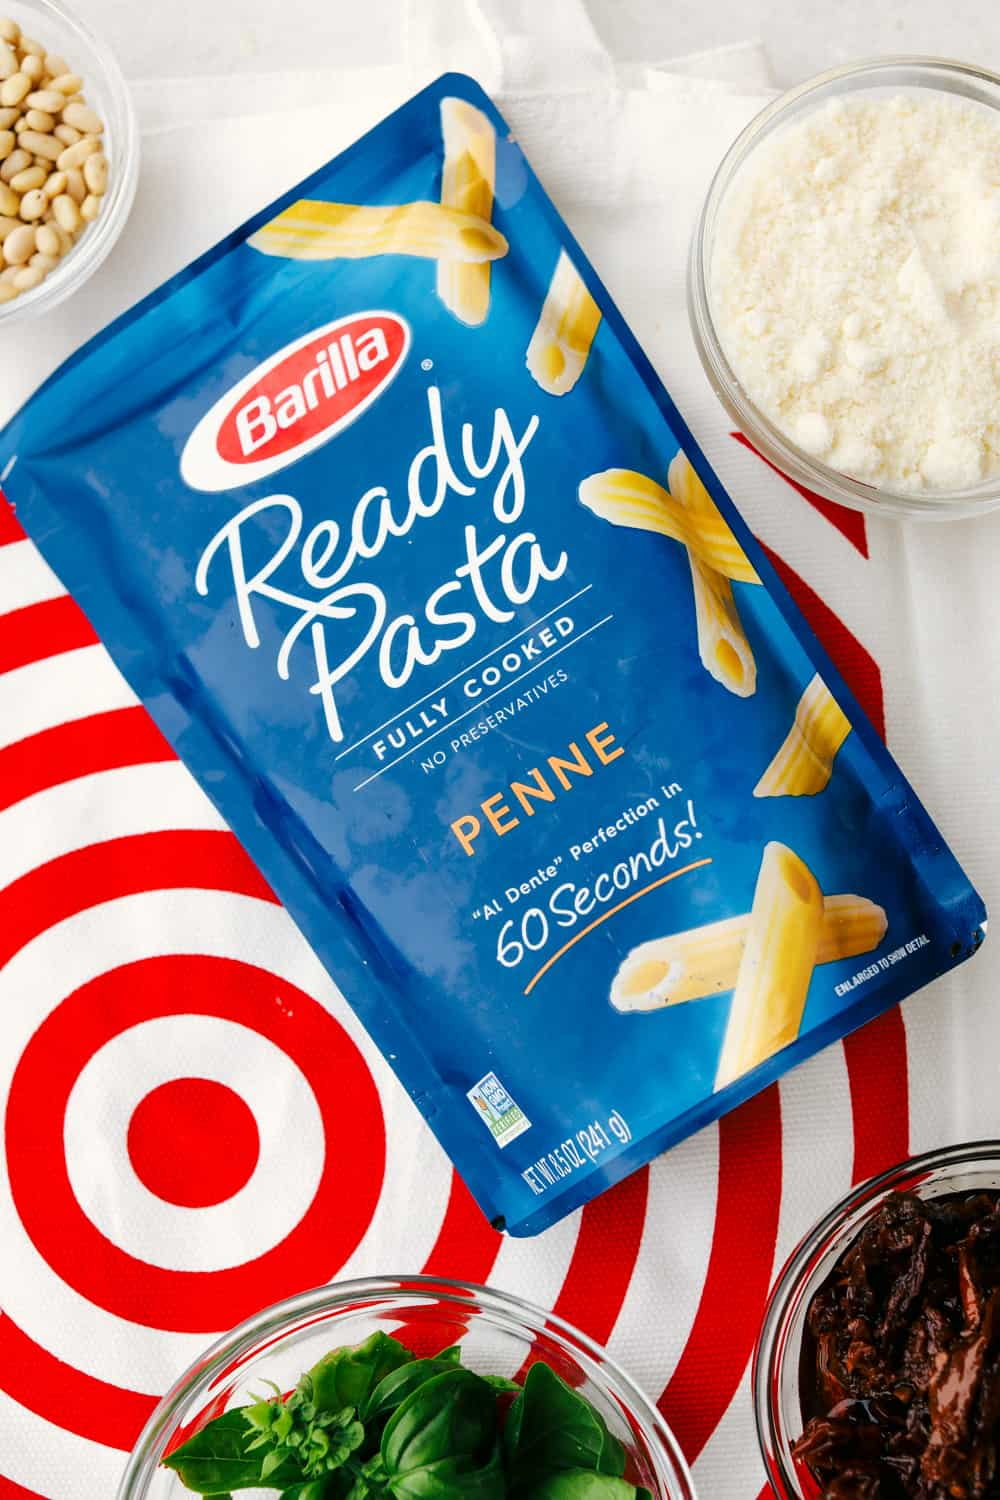 Barilla Ready Pasta laying on its back over top a target bag.